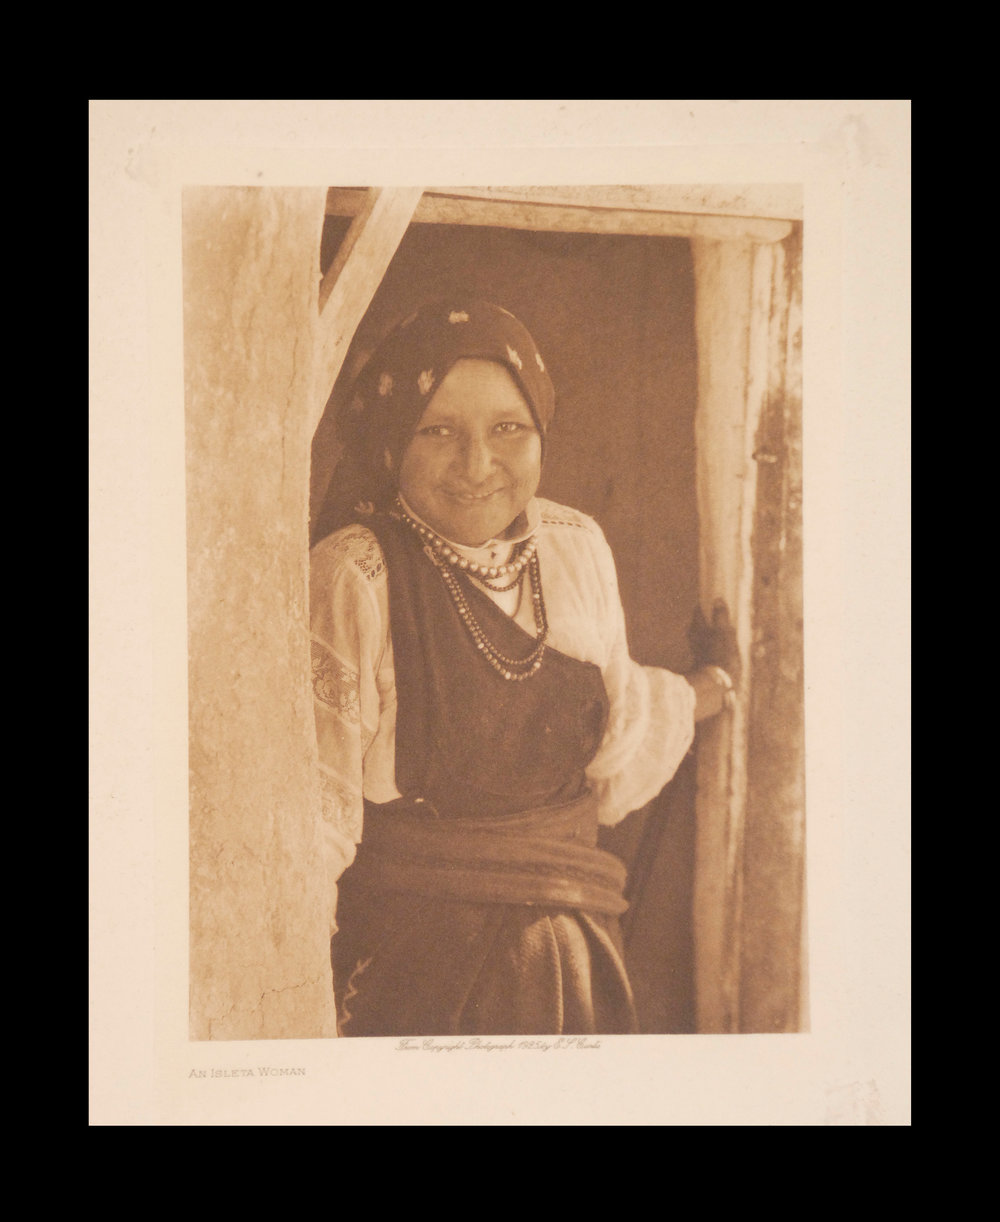 """An Isleta Woman"" 1925 Vol.16 Tissue Print, Vintage Photogravure"